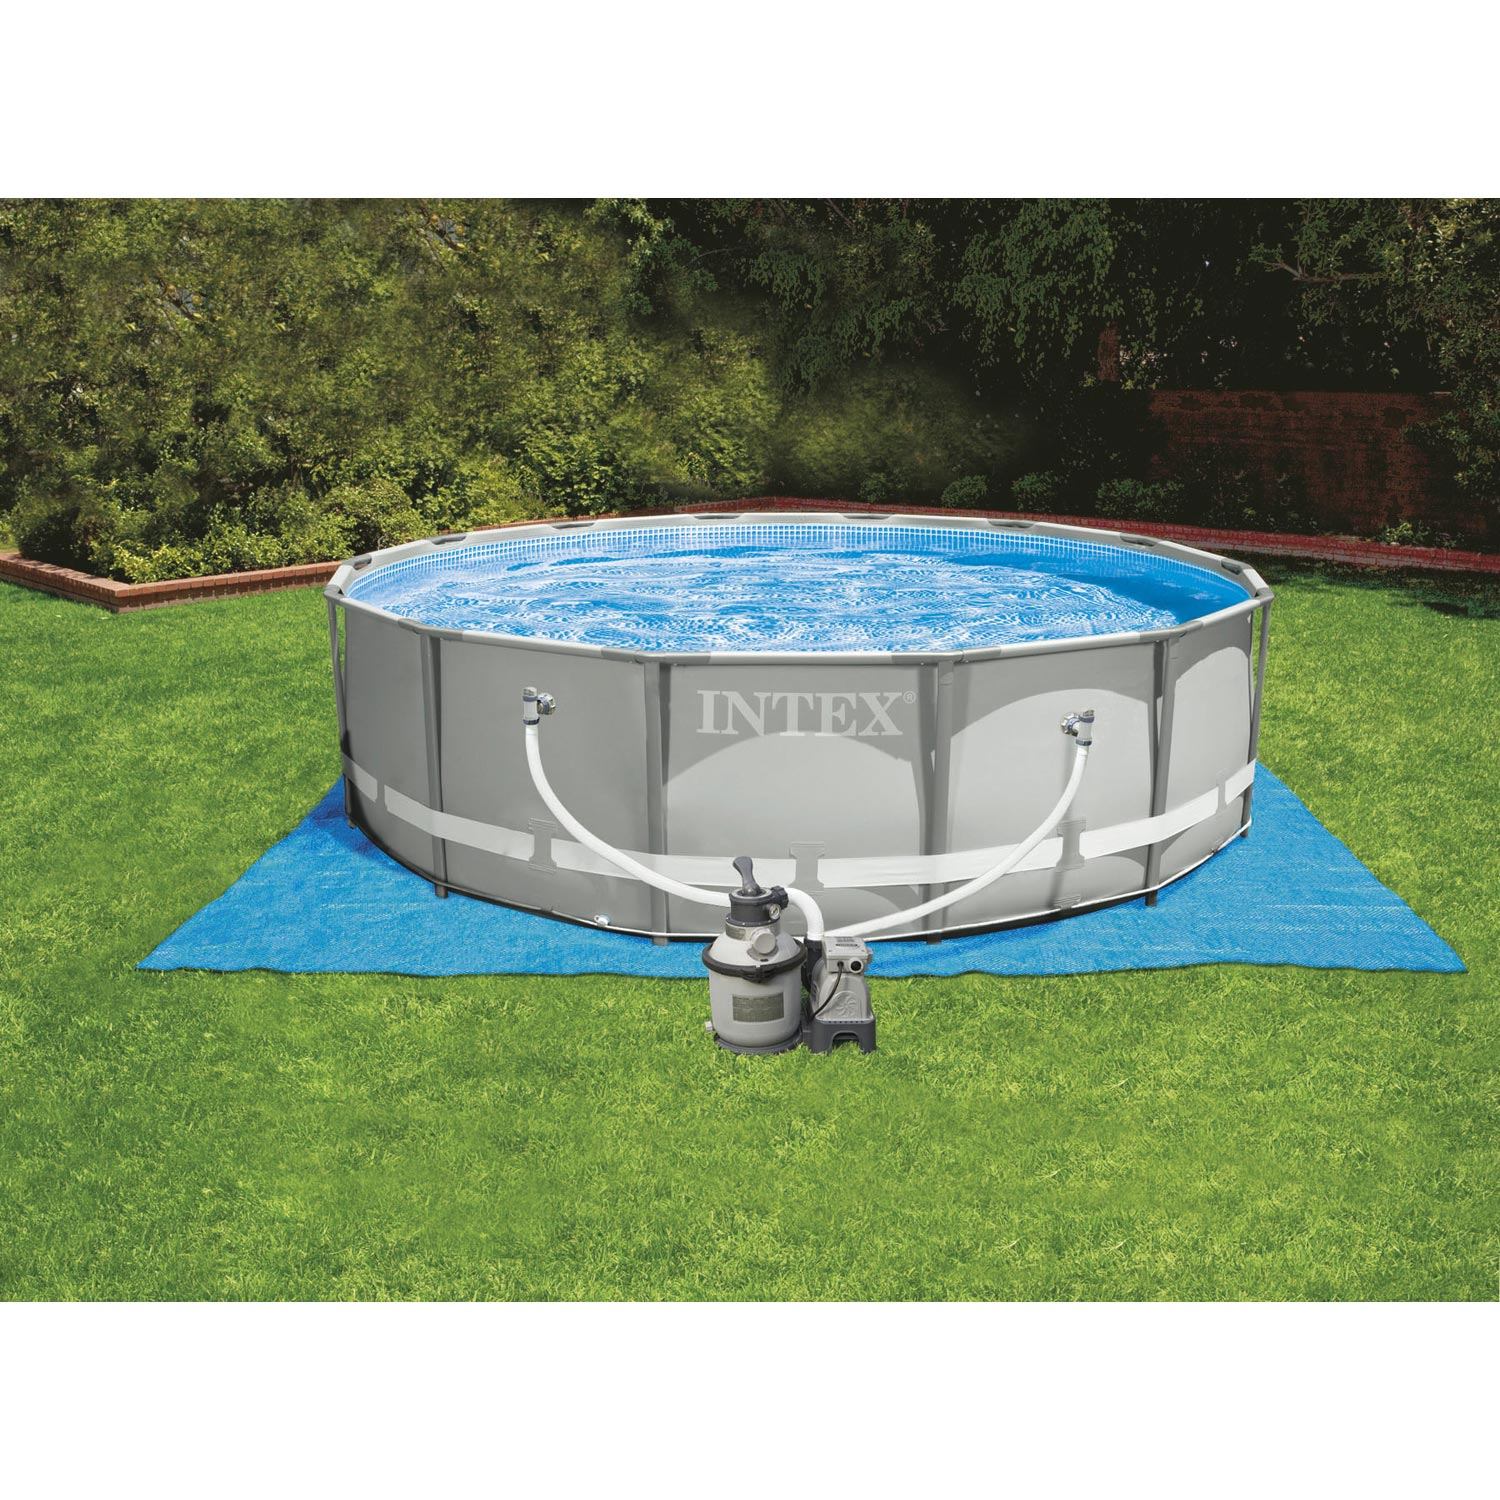 Piscine hors sol autoportante tubulaire ultra frame intex for Piscine auchan